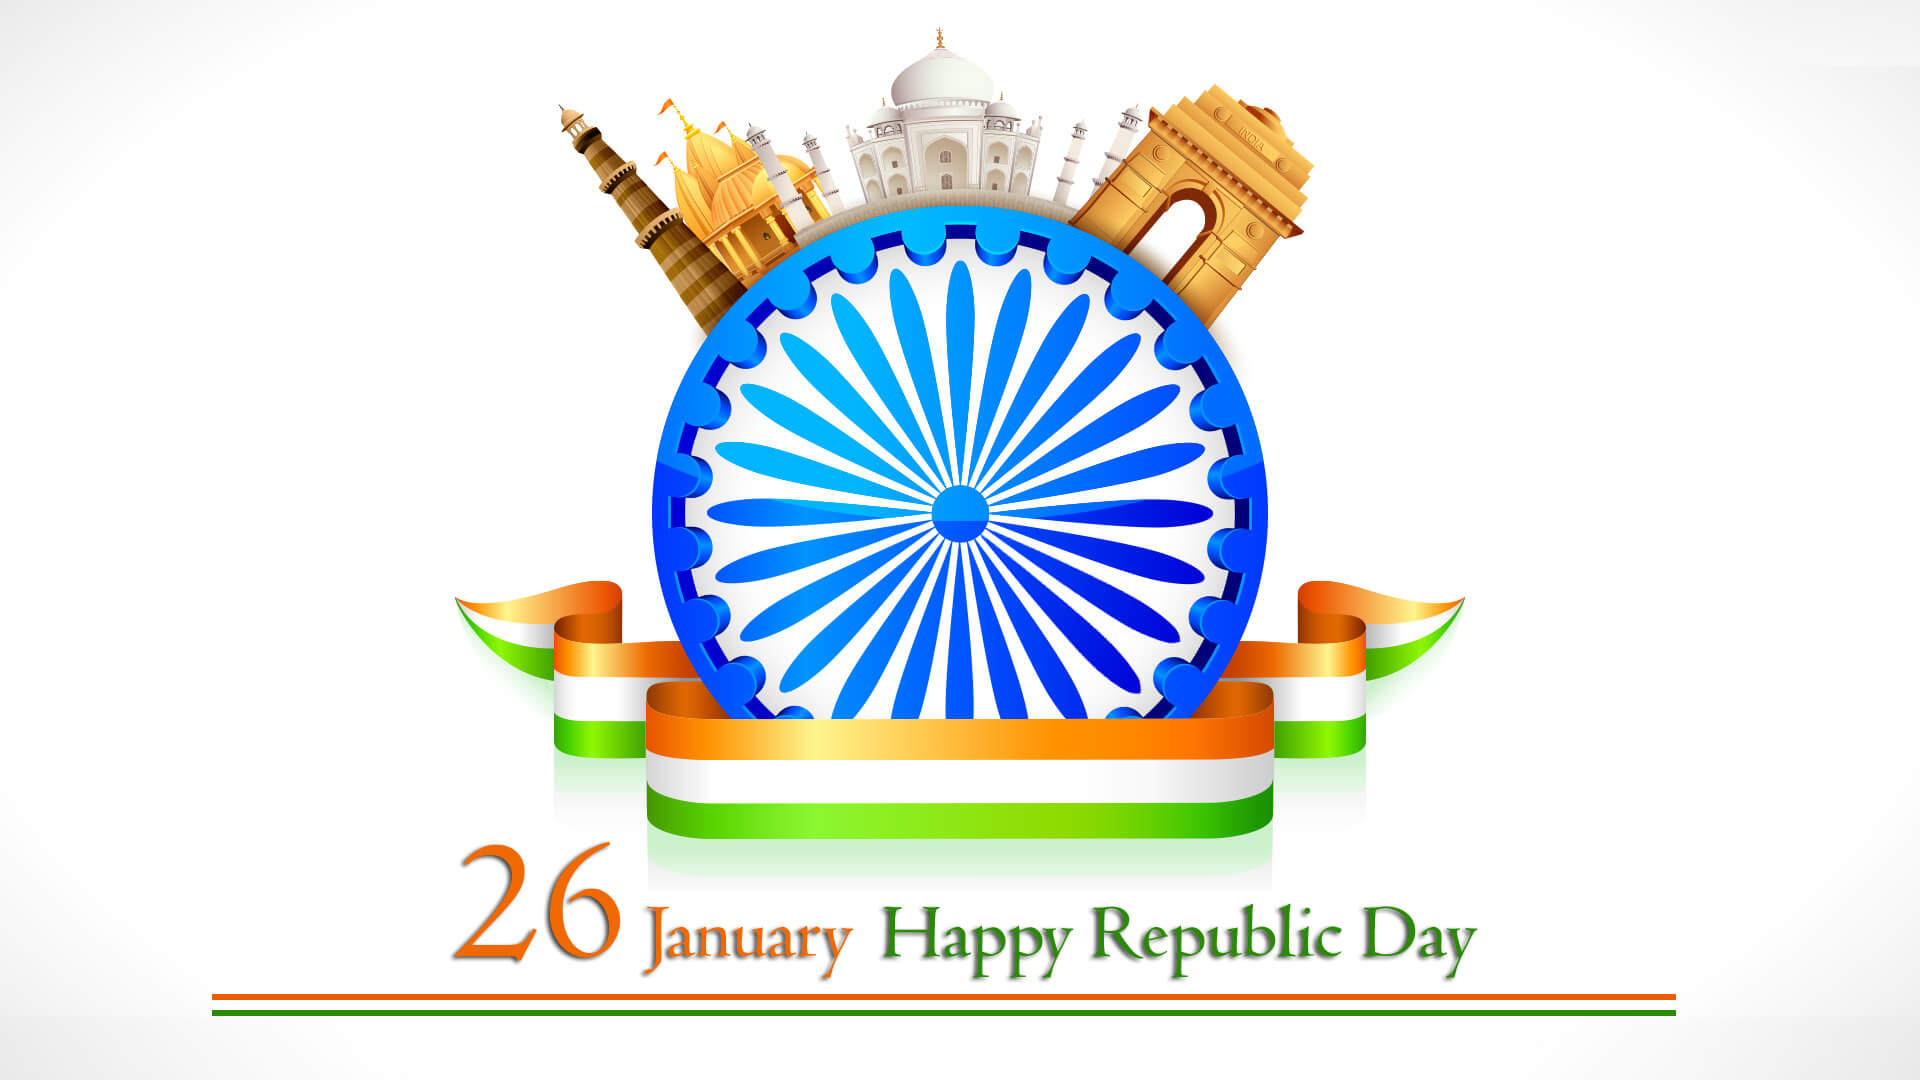 happy republic day wishes india 26 january hd desktop wallpaper